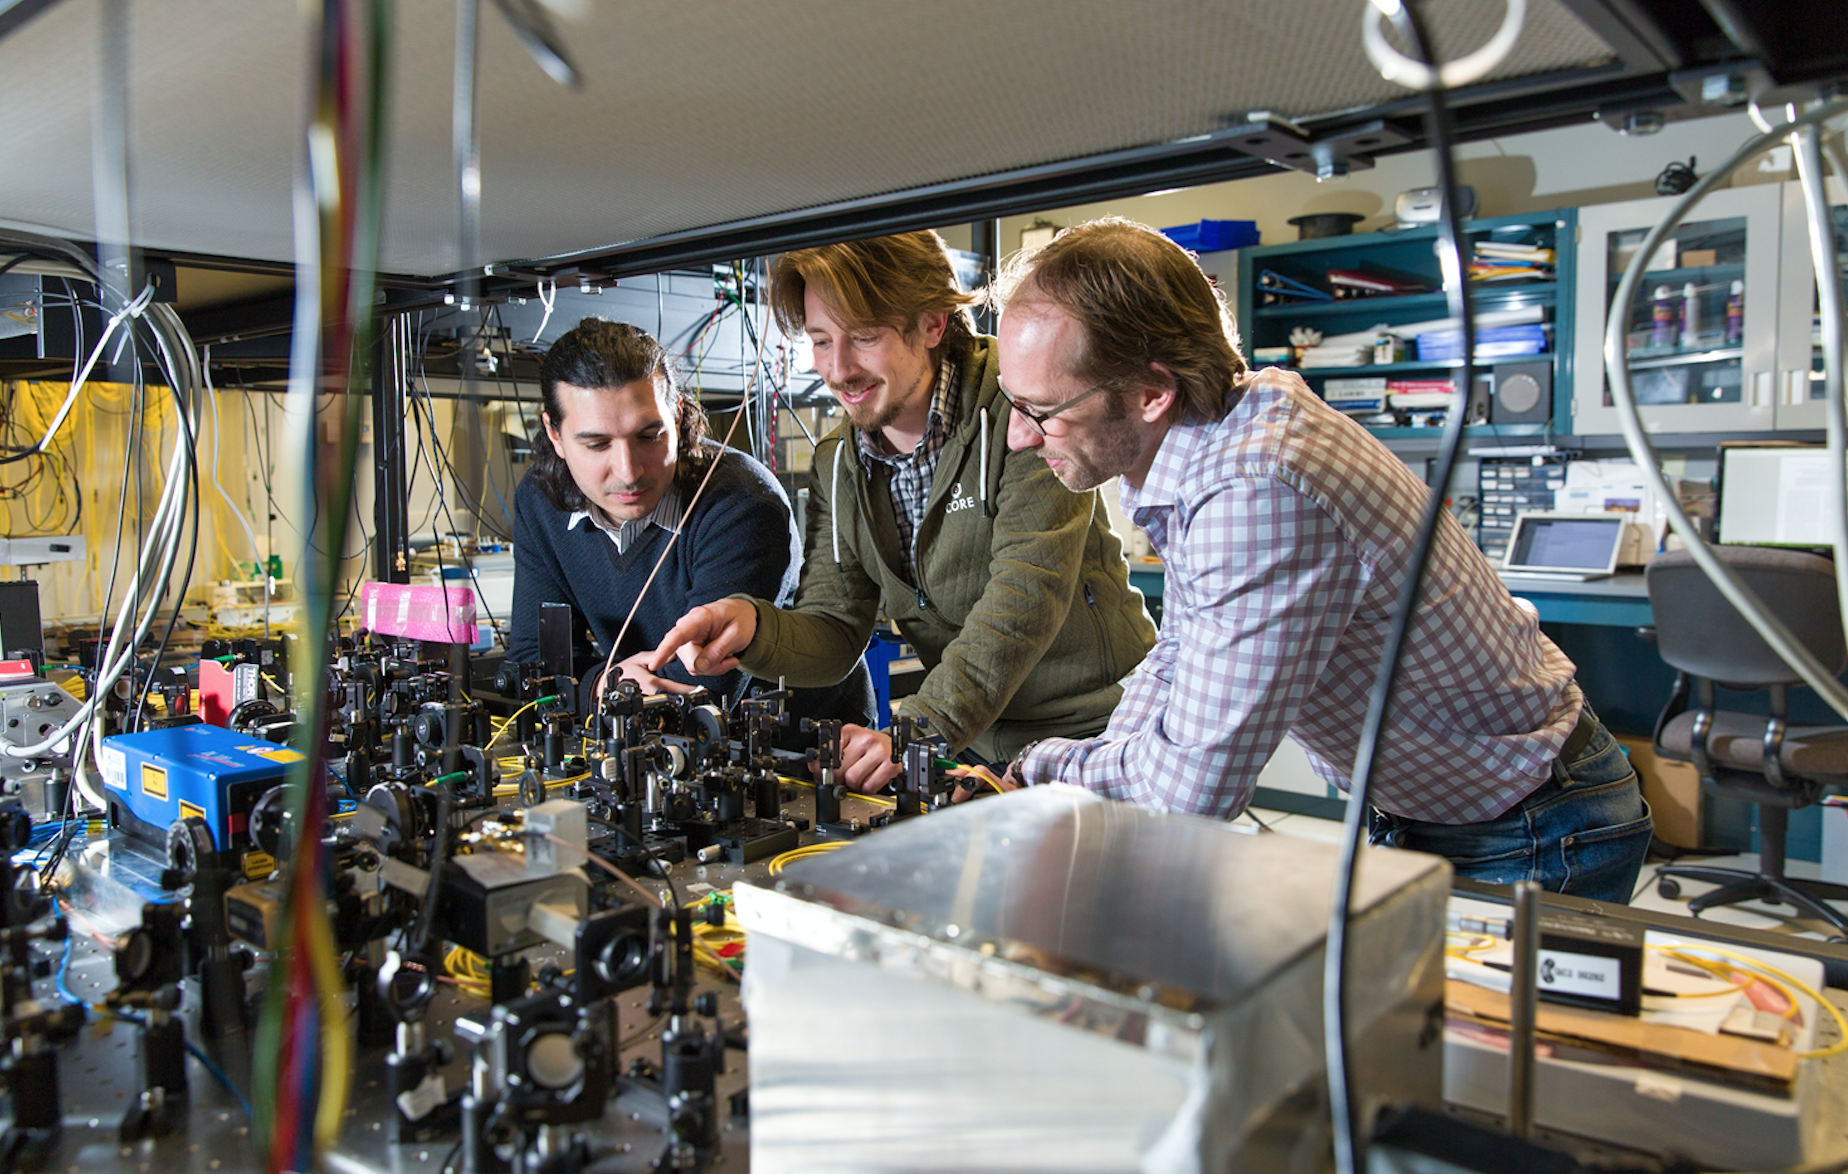 Scientists Set a New Distance Record for Quantum Teleportation